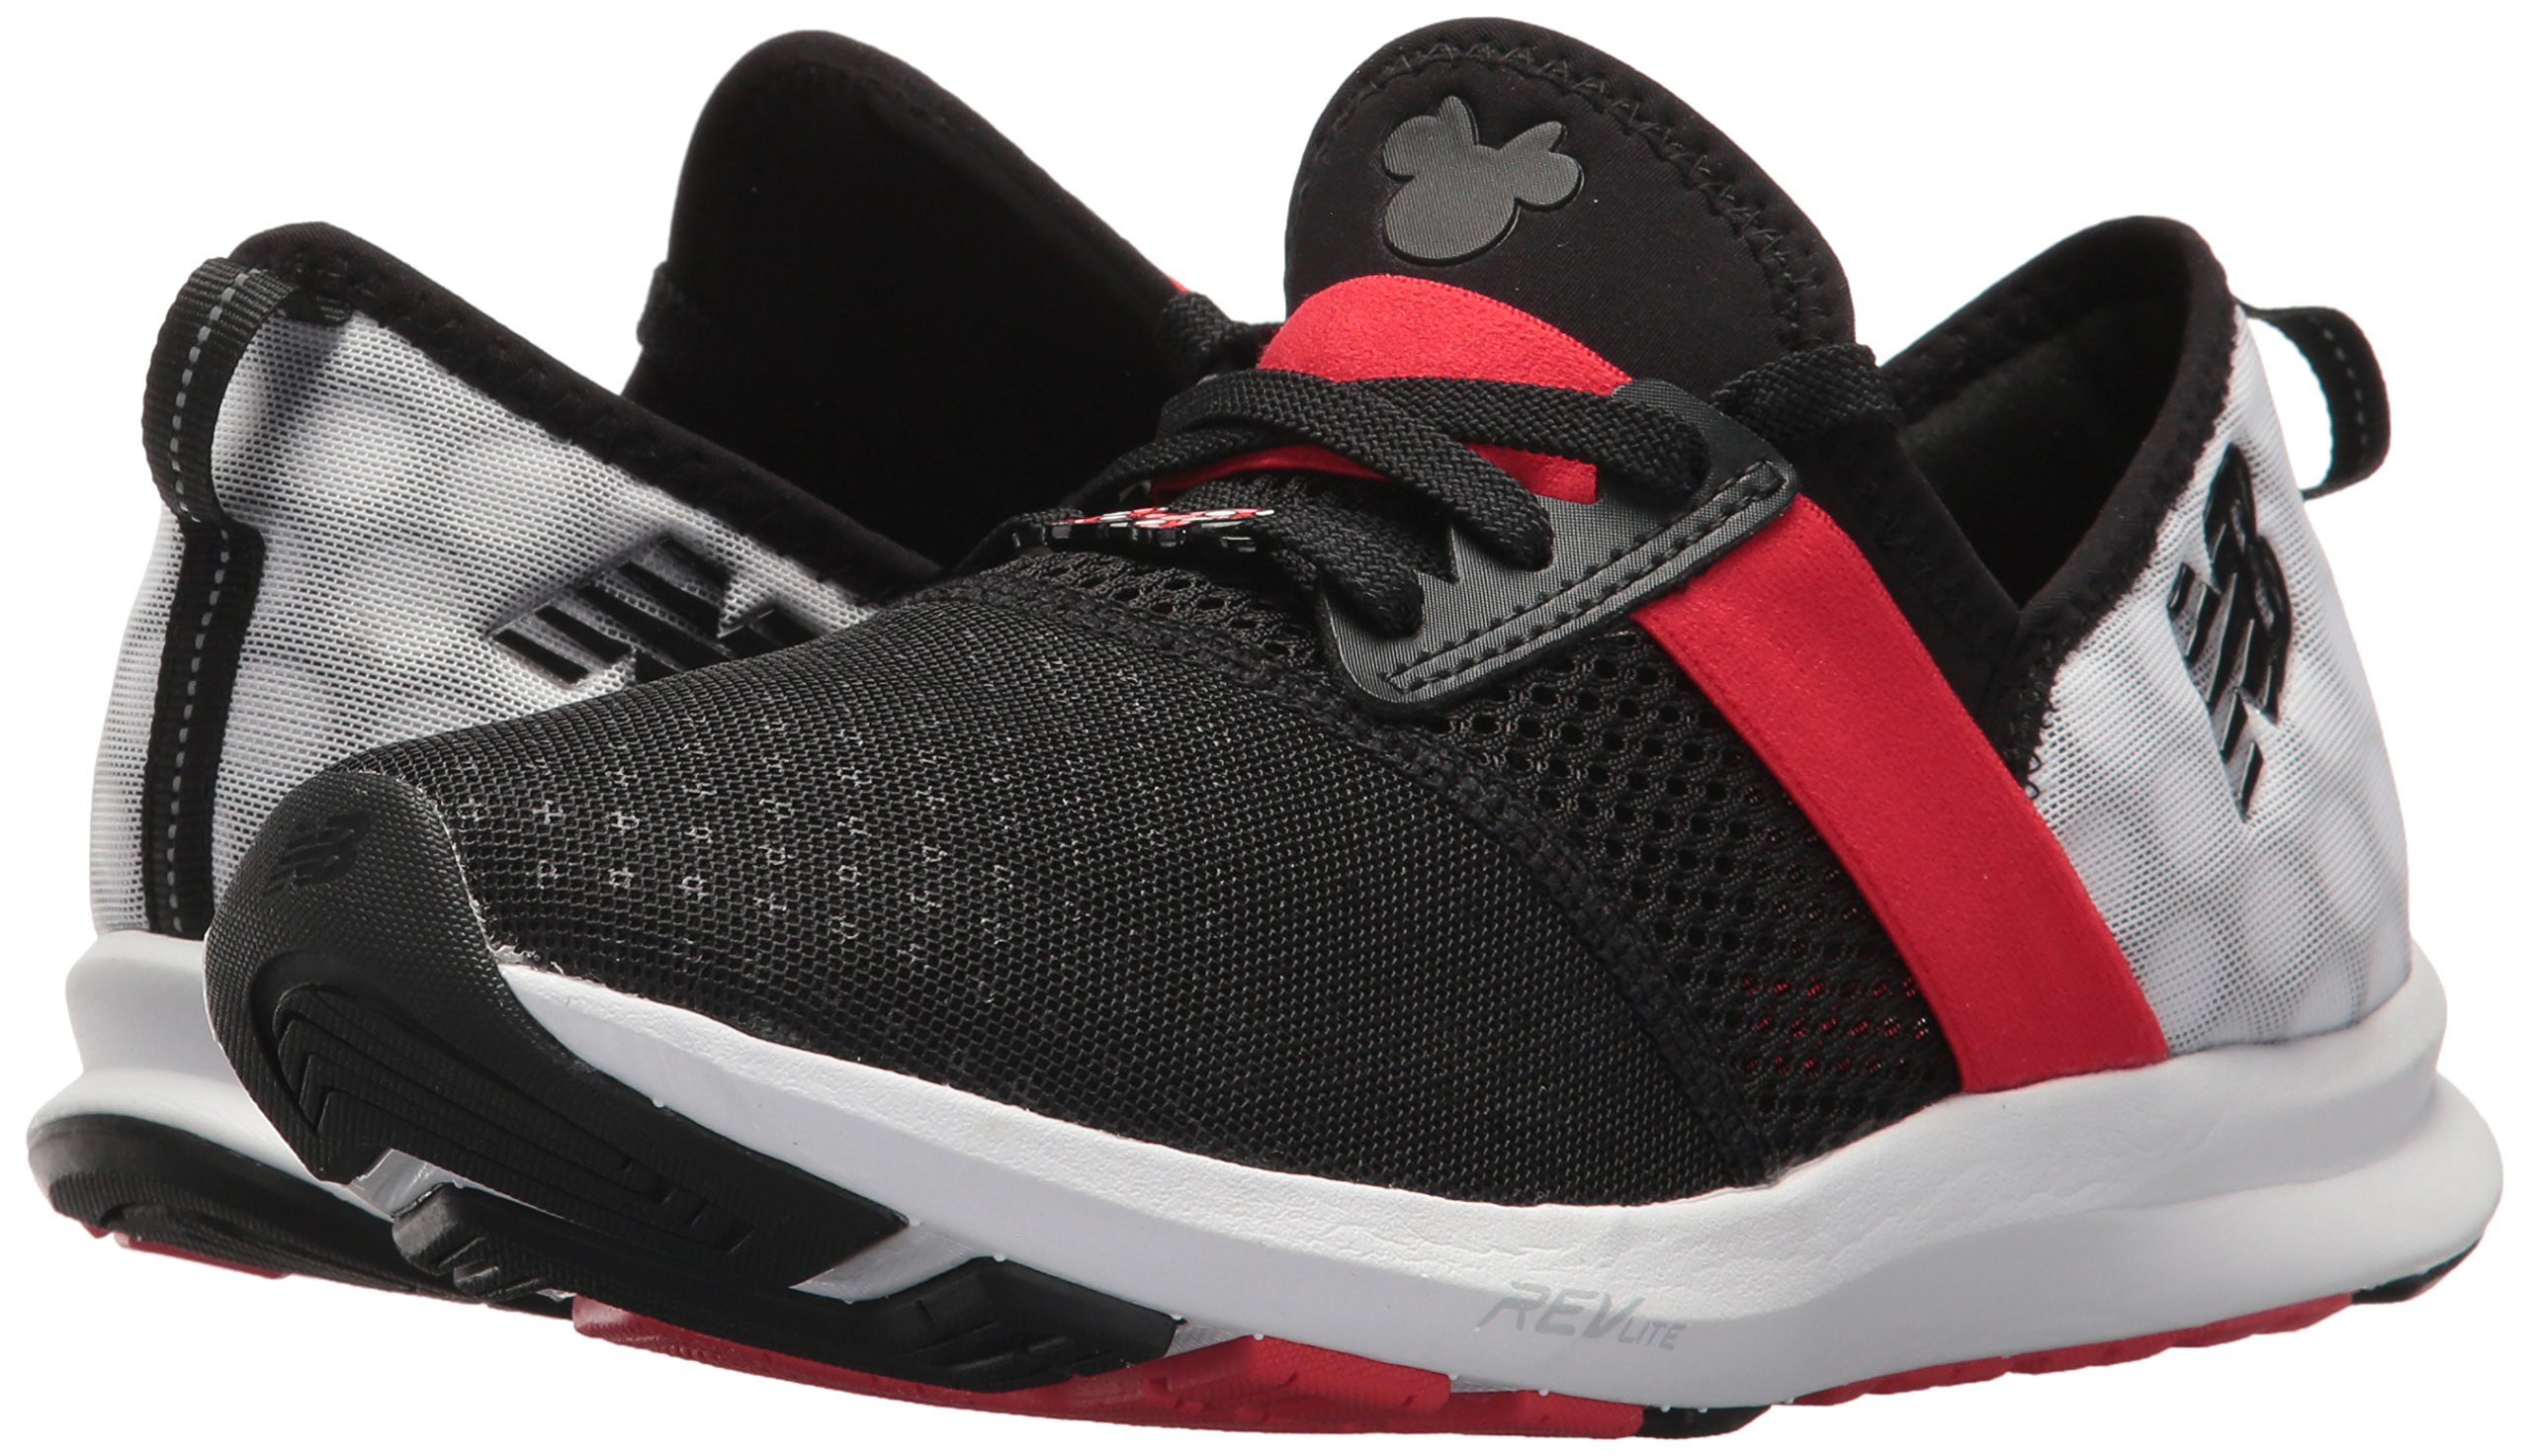 New Balance Women's Nergize V1 Fuelcore Disney Cross Trainer, Black/Red, 85 B US by New Balance (Image #6)